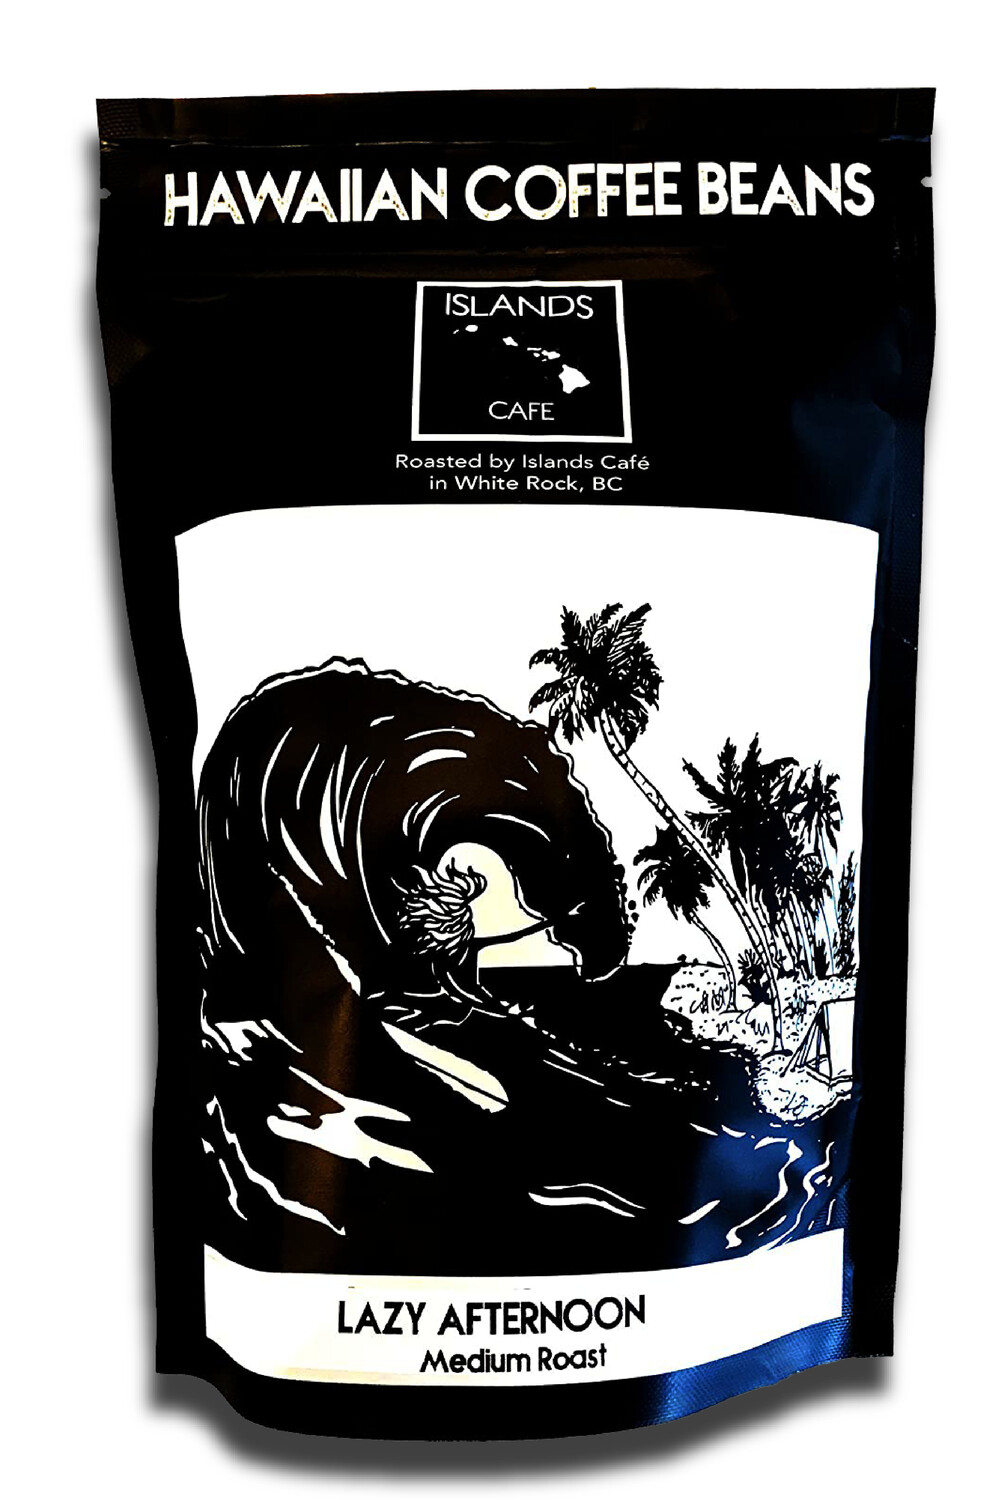 8 oz. Lazy Afternoon Medium Roasted Hawaiian Coffee